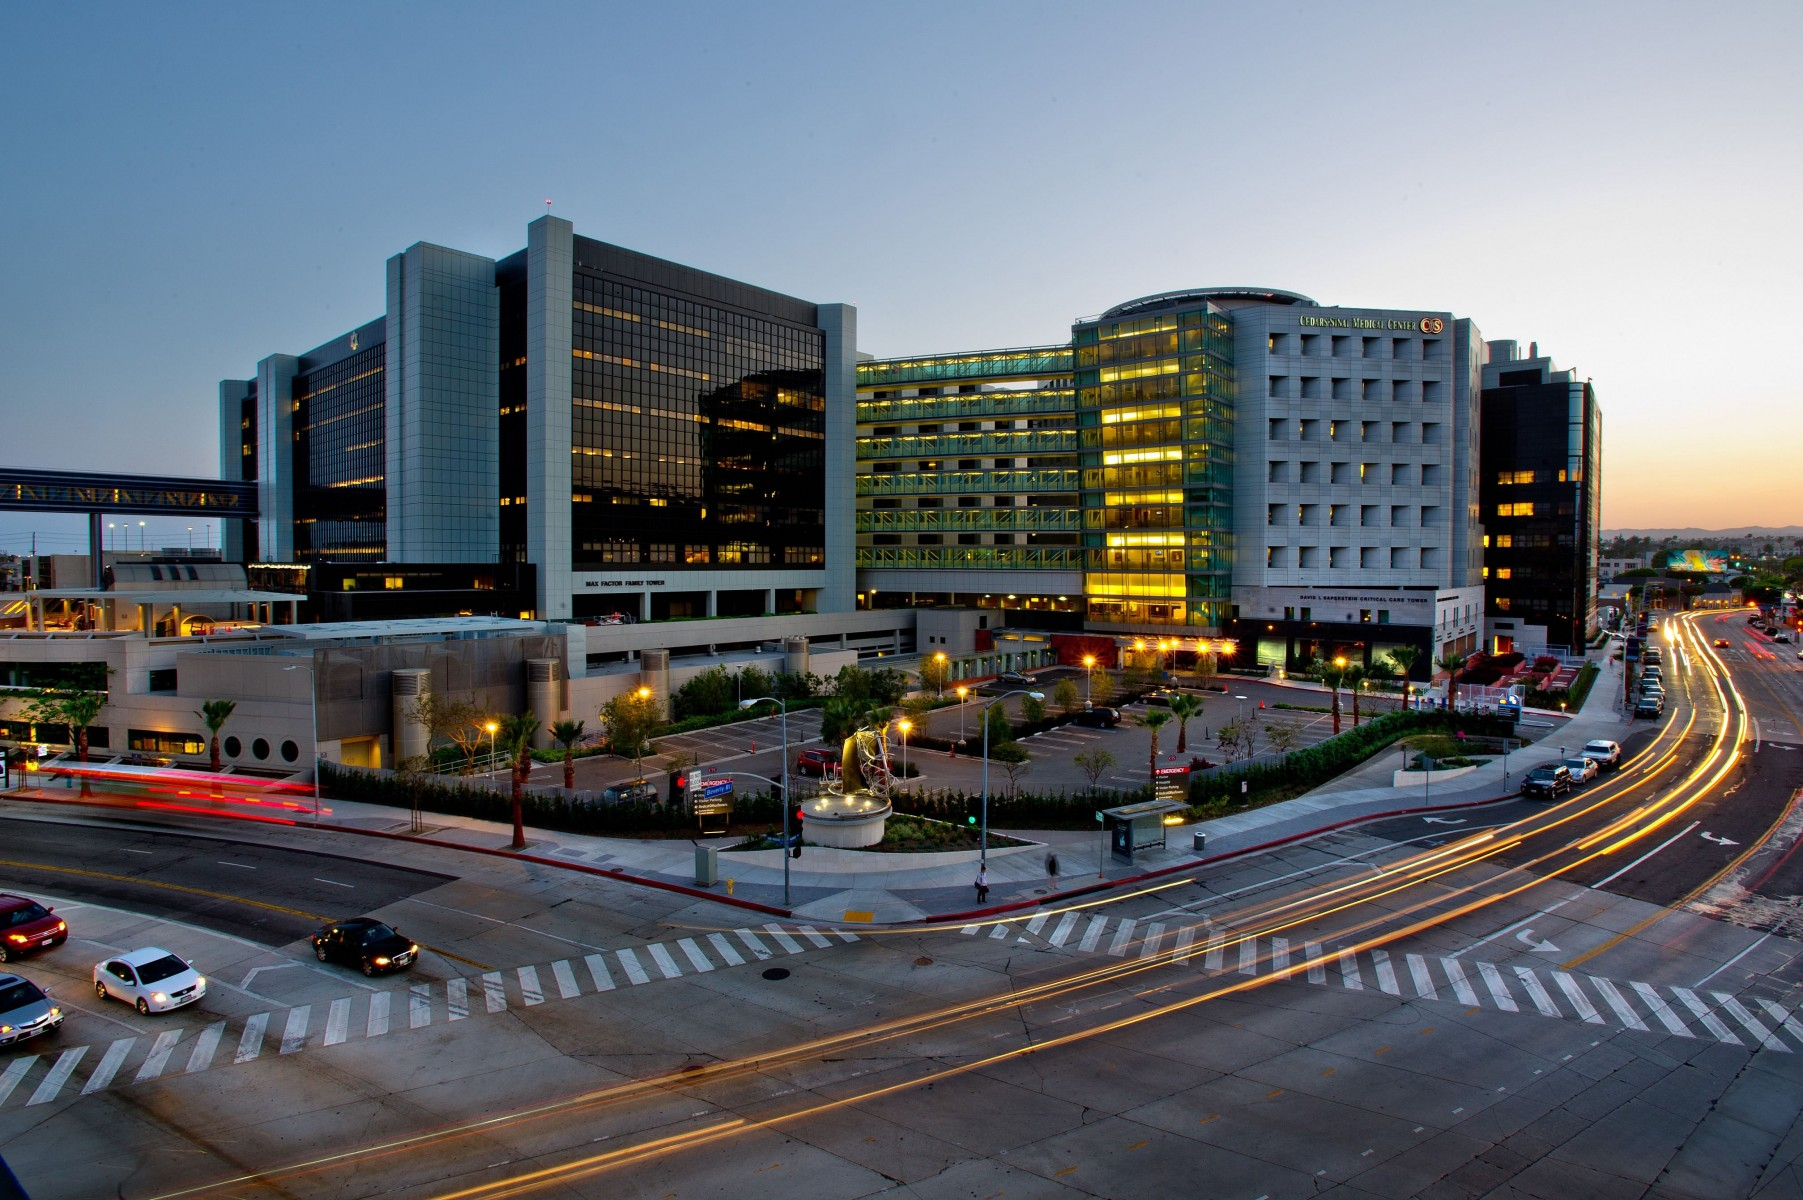 Cedars-Sinai Medical Center has earned a five-star rating from the Centers for Medicare and Medicaid Services. Photo by Cedars-Sinai.